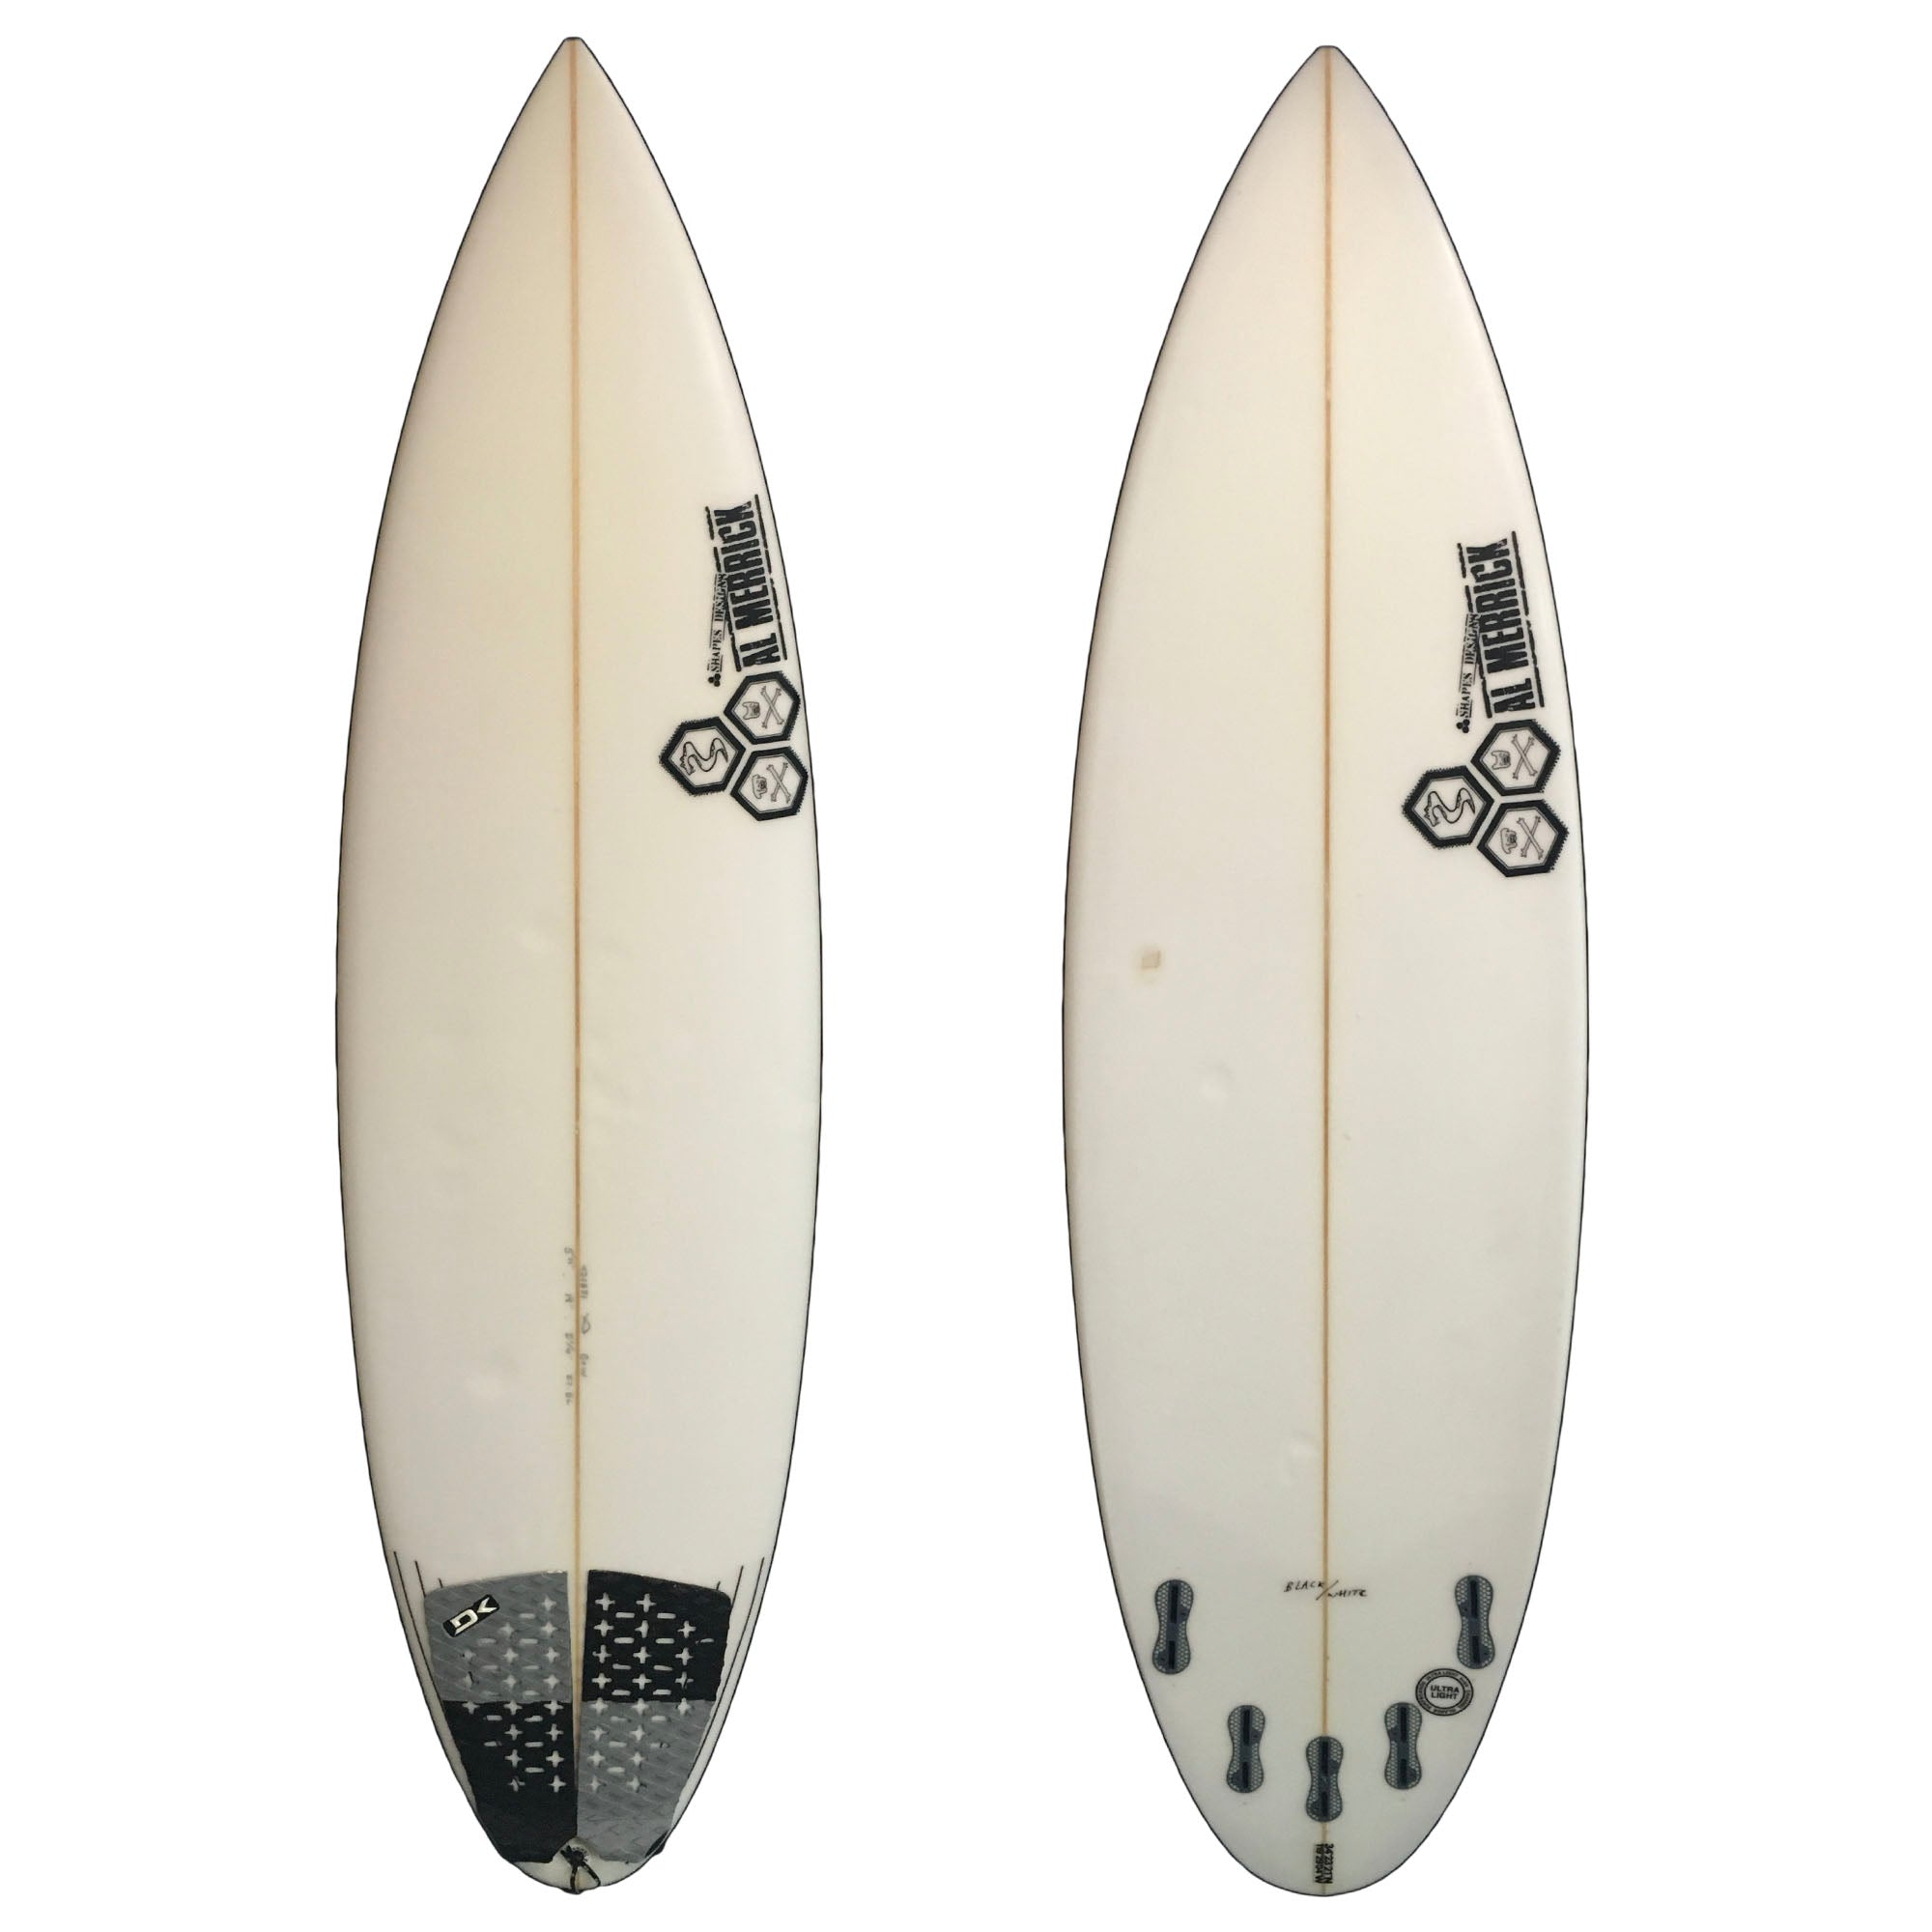 Channel Islands Black and White 5'11 Used Surfboard